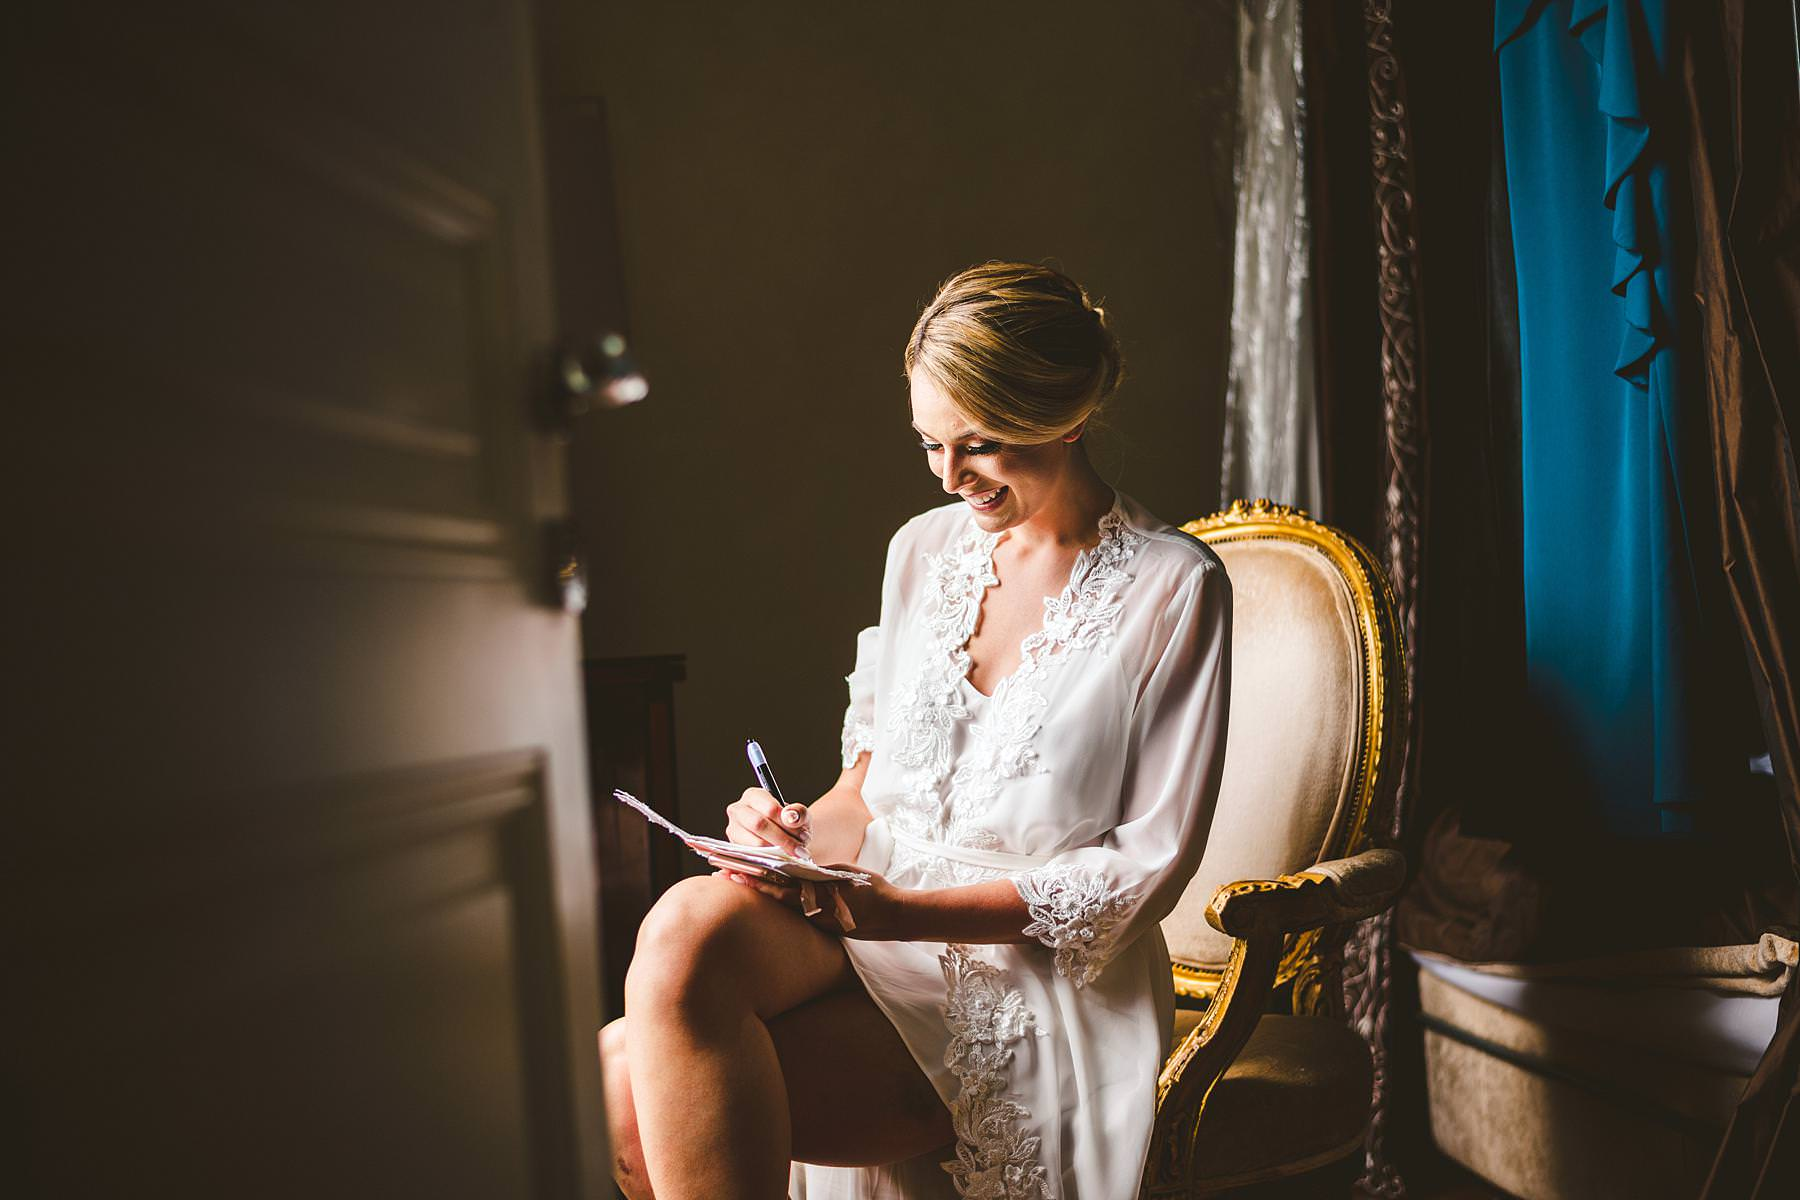 Lovely bride Christina write wedding vows just before the intimate outdoor wedding ceremony at Villa La Vedetta, Florence